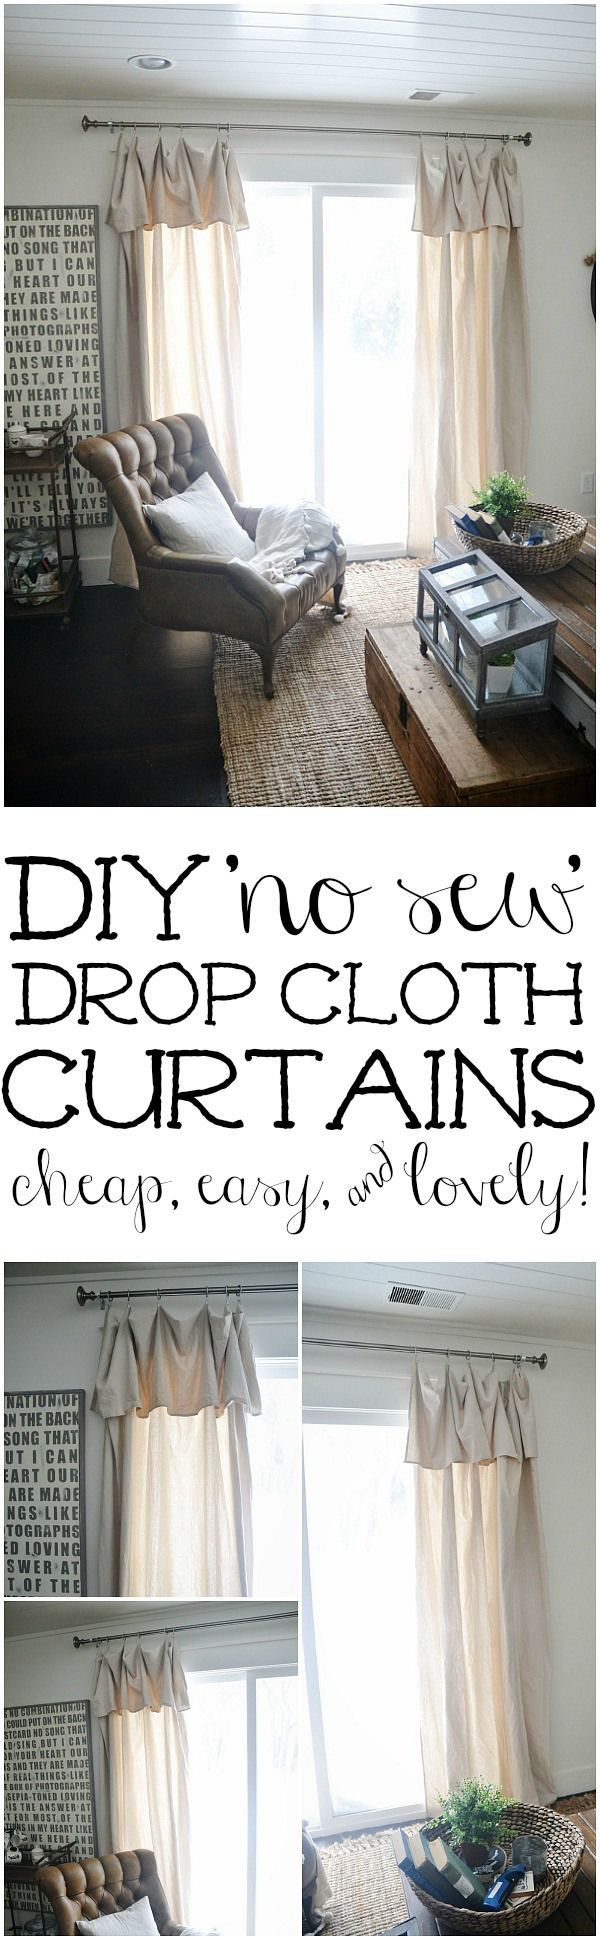 Diy bathroom curtain ideas - 17 Best Ideas About Bathroom Window Curtains On Pinterest Window Sun Shades Orange Laundry Room Furniture And Pink Office Blinds